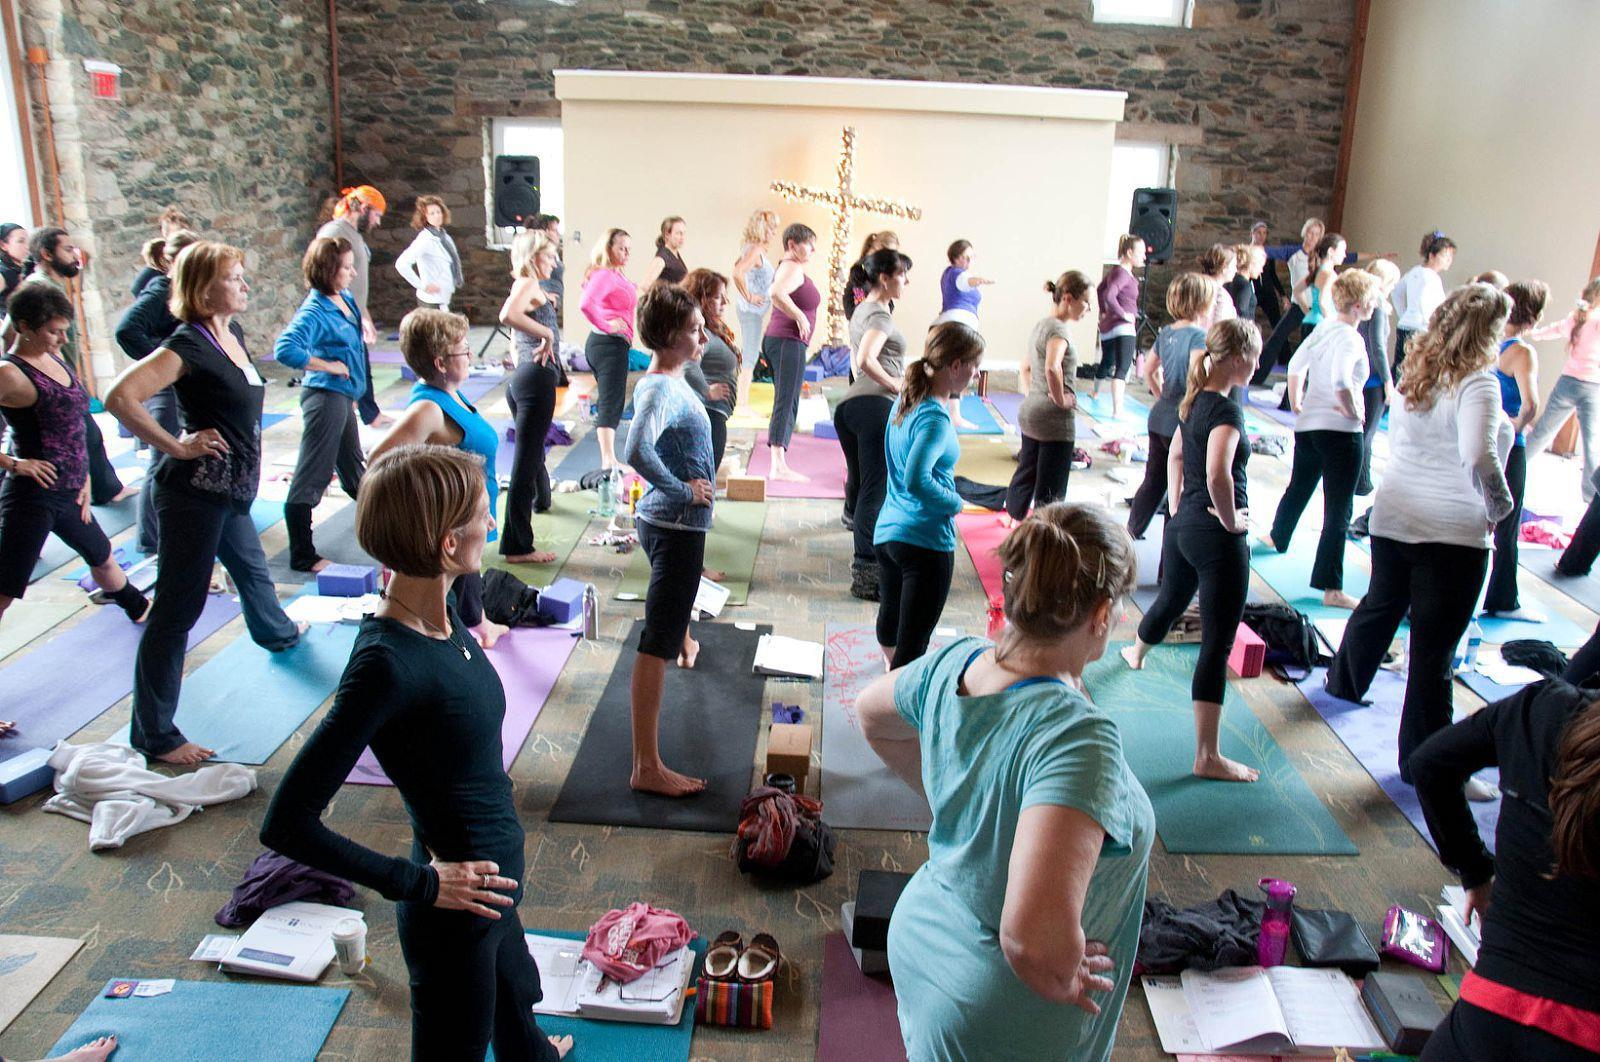 yoga and christianity The trouble with yoga michelle arnold a worldwide conspiracy among hindus to infiltrate the west and bring about the downfall of christianity through yoga.